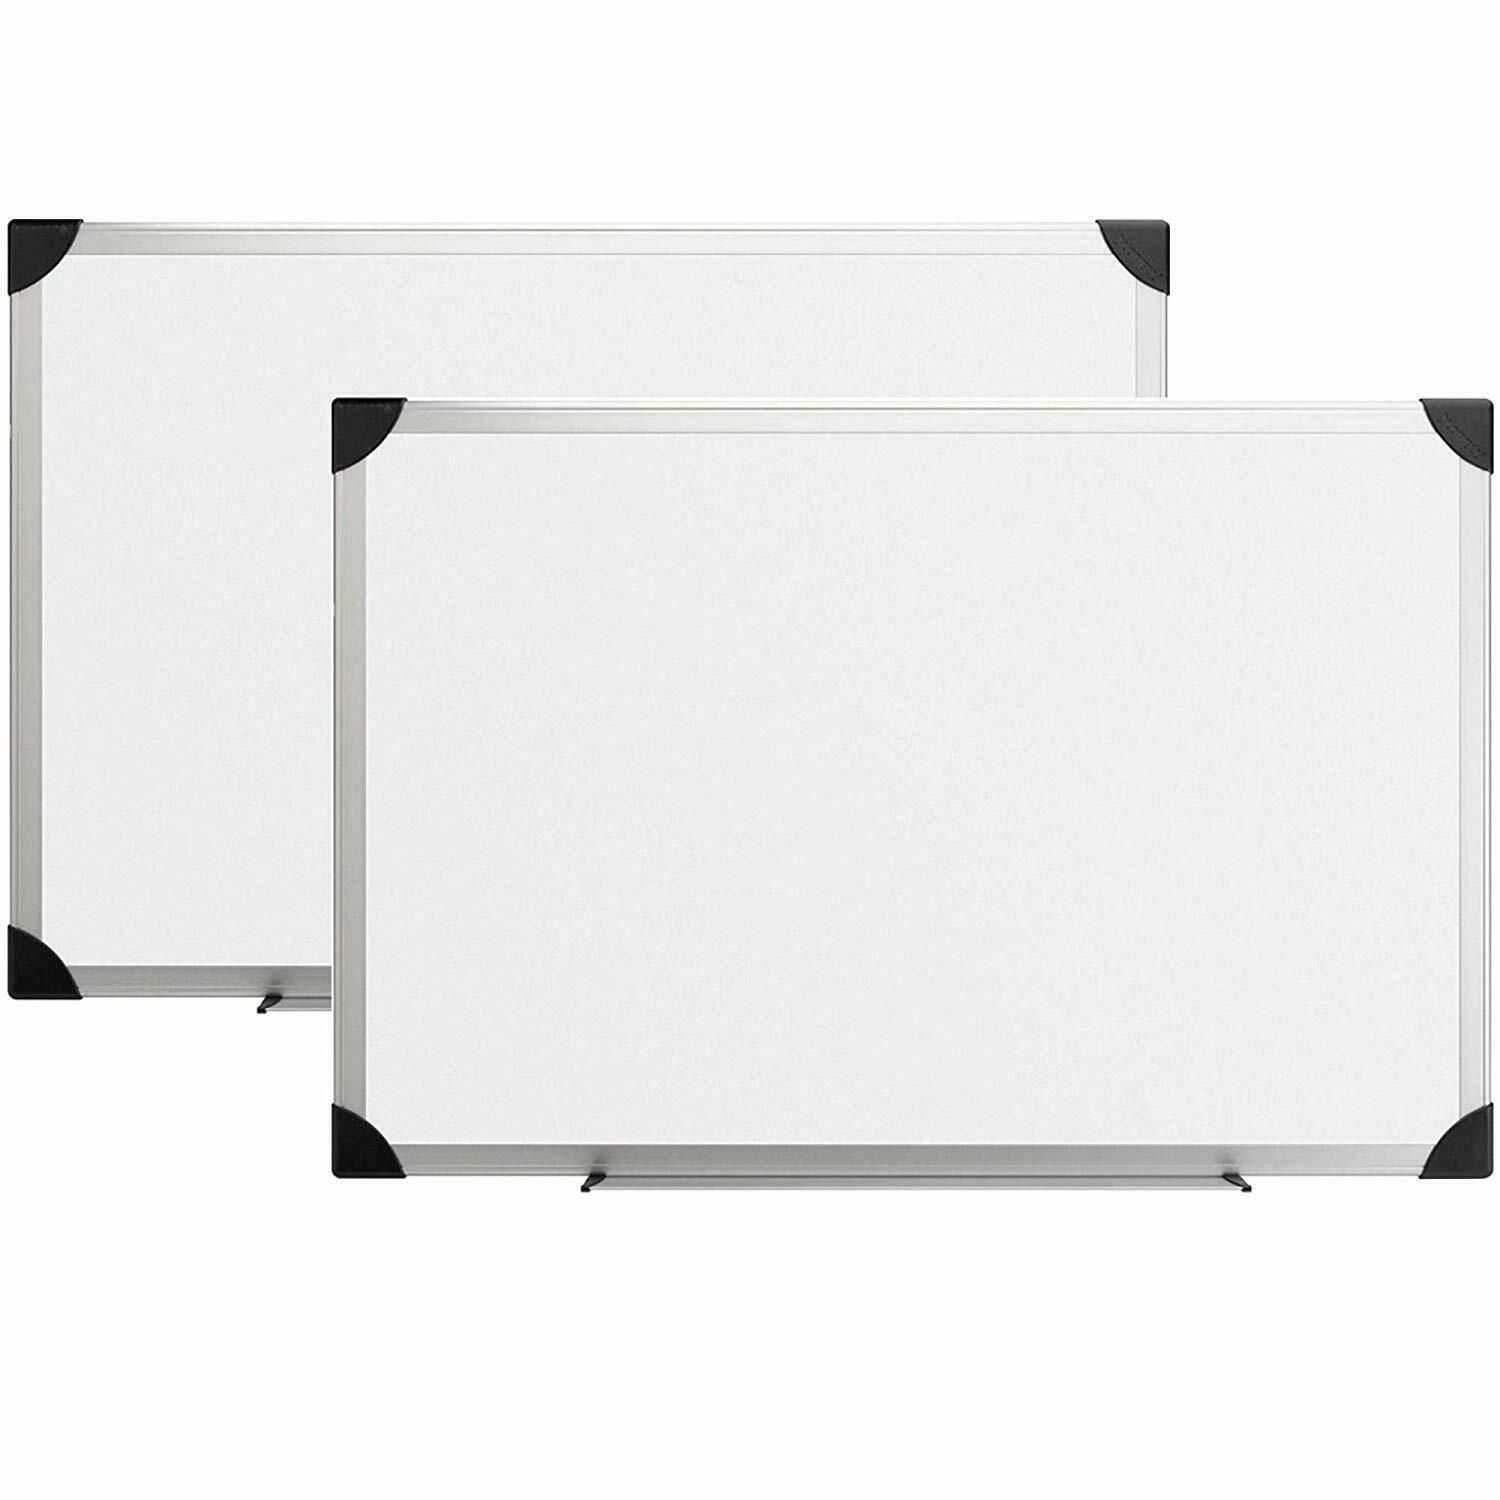 Whiteboard Eraser Whiteboard Eraser Ideas Whiteboarderaser Eraser Dry Erase Board Melamine Aluminium Fra With Images Whiteboard Eraser White Board Magnetic White Board